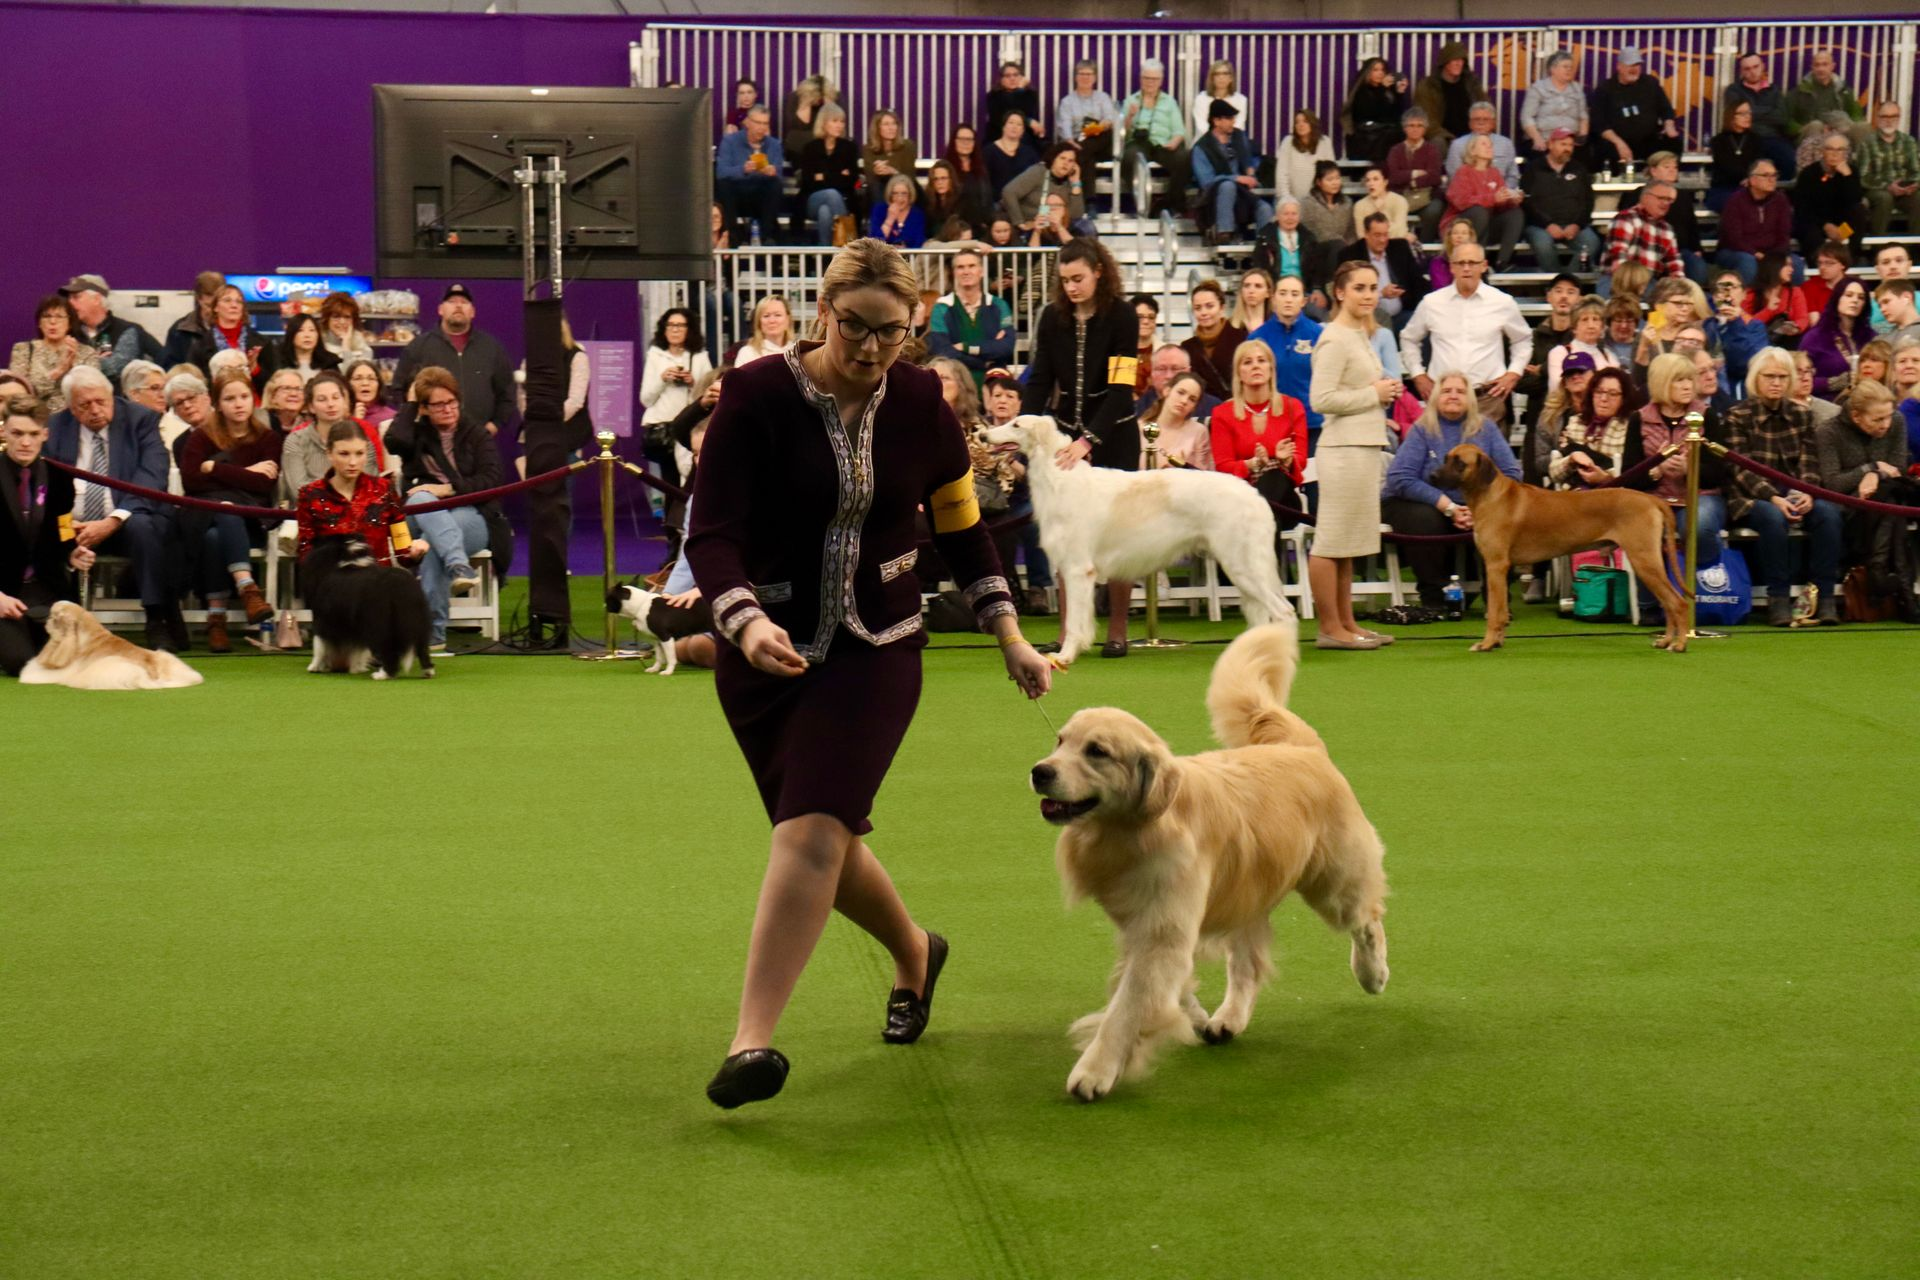 Dog trots in competition.